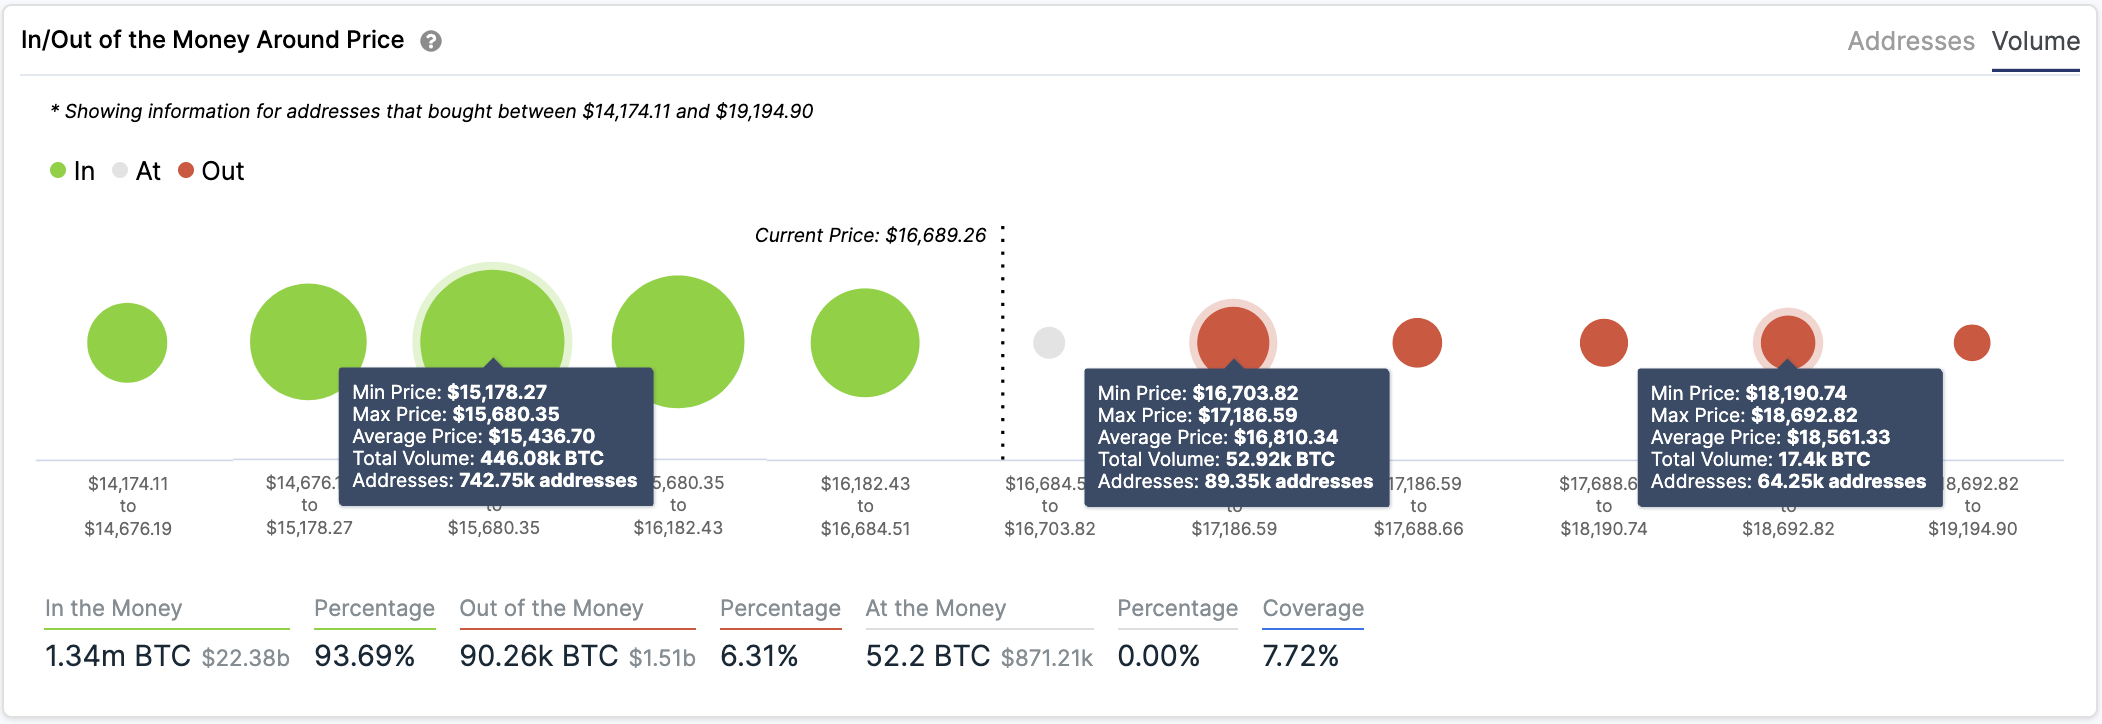 Bitcoin In/Out of the Money Around Price by IntoTheBlock